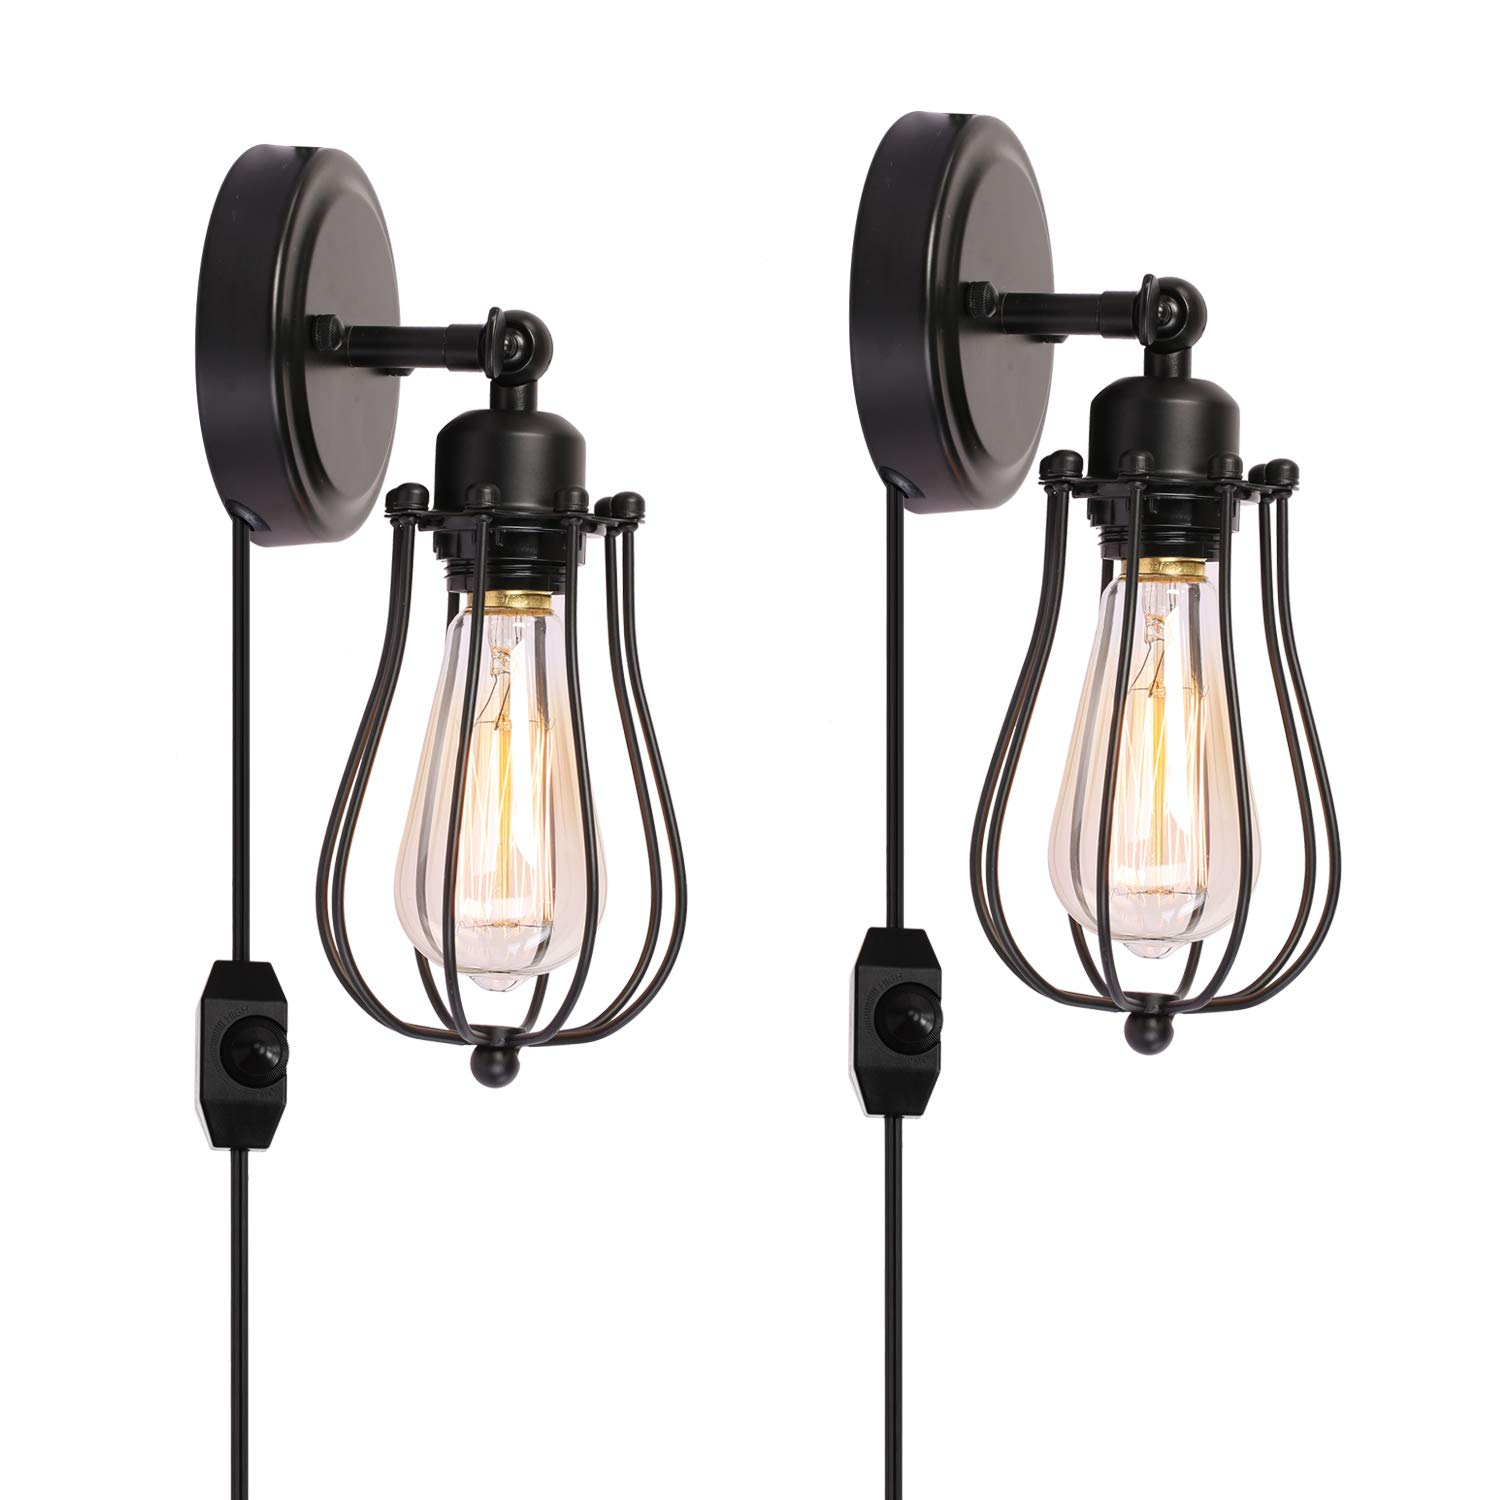 Kingmi Wire Cage Industrial Wall Sconce Plug-in Wall Light Shade Vintage Style Edison E26 Base with Dmmer Switch for Headboard Bedroom Garage Porch Light 2 Packs(HARDWIRE)